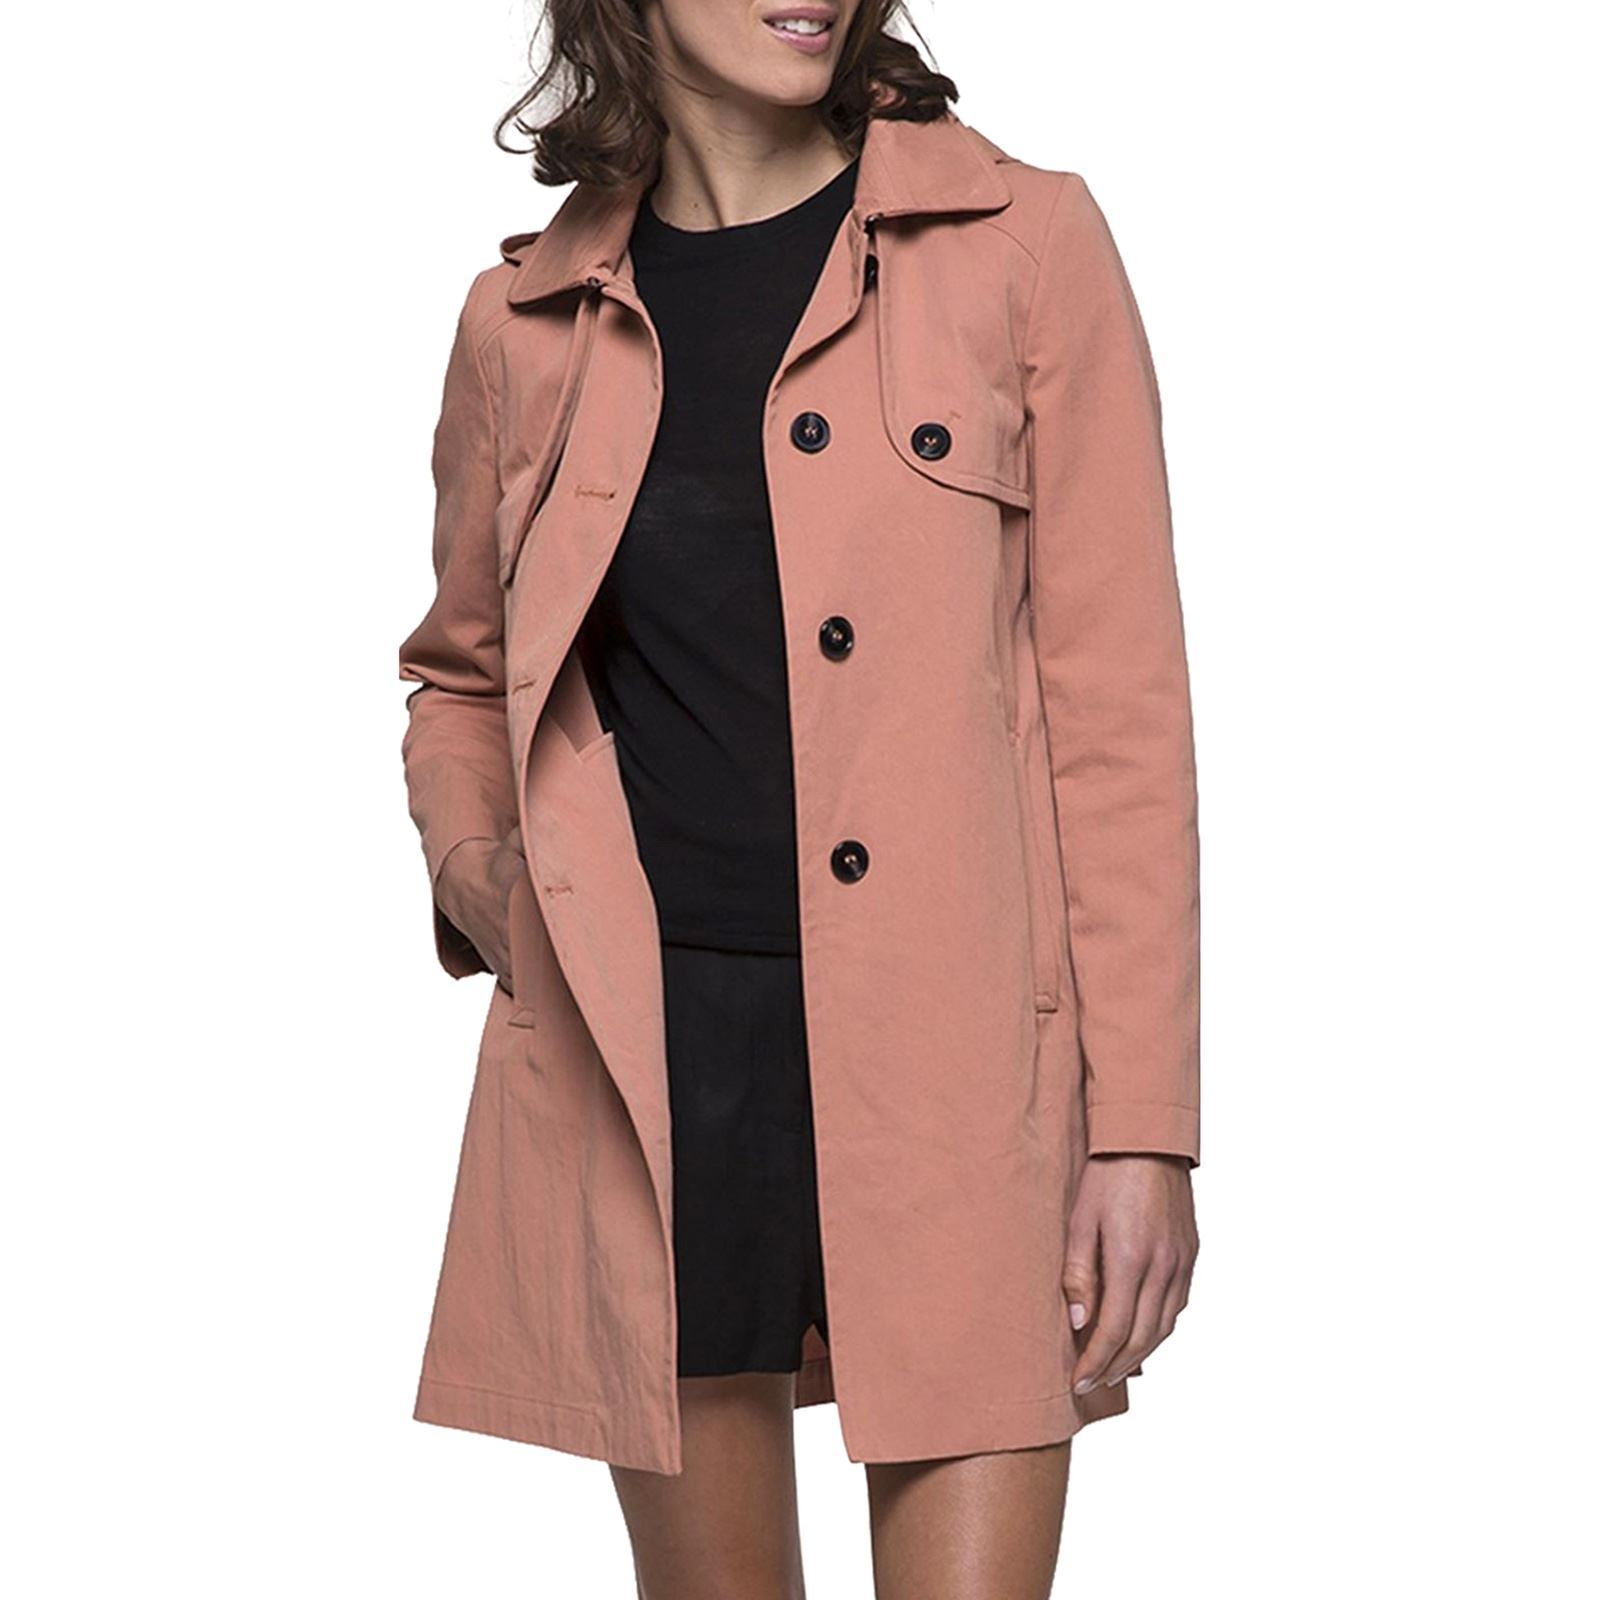 SofreshSaumon And Coat V Femme Trench VqUpSzMG